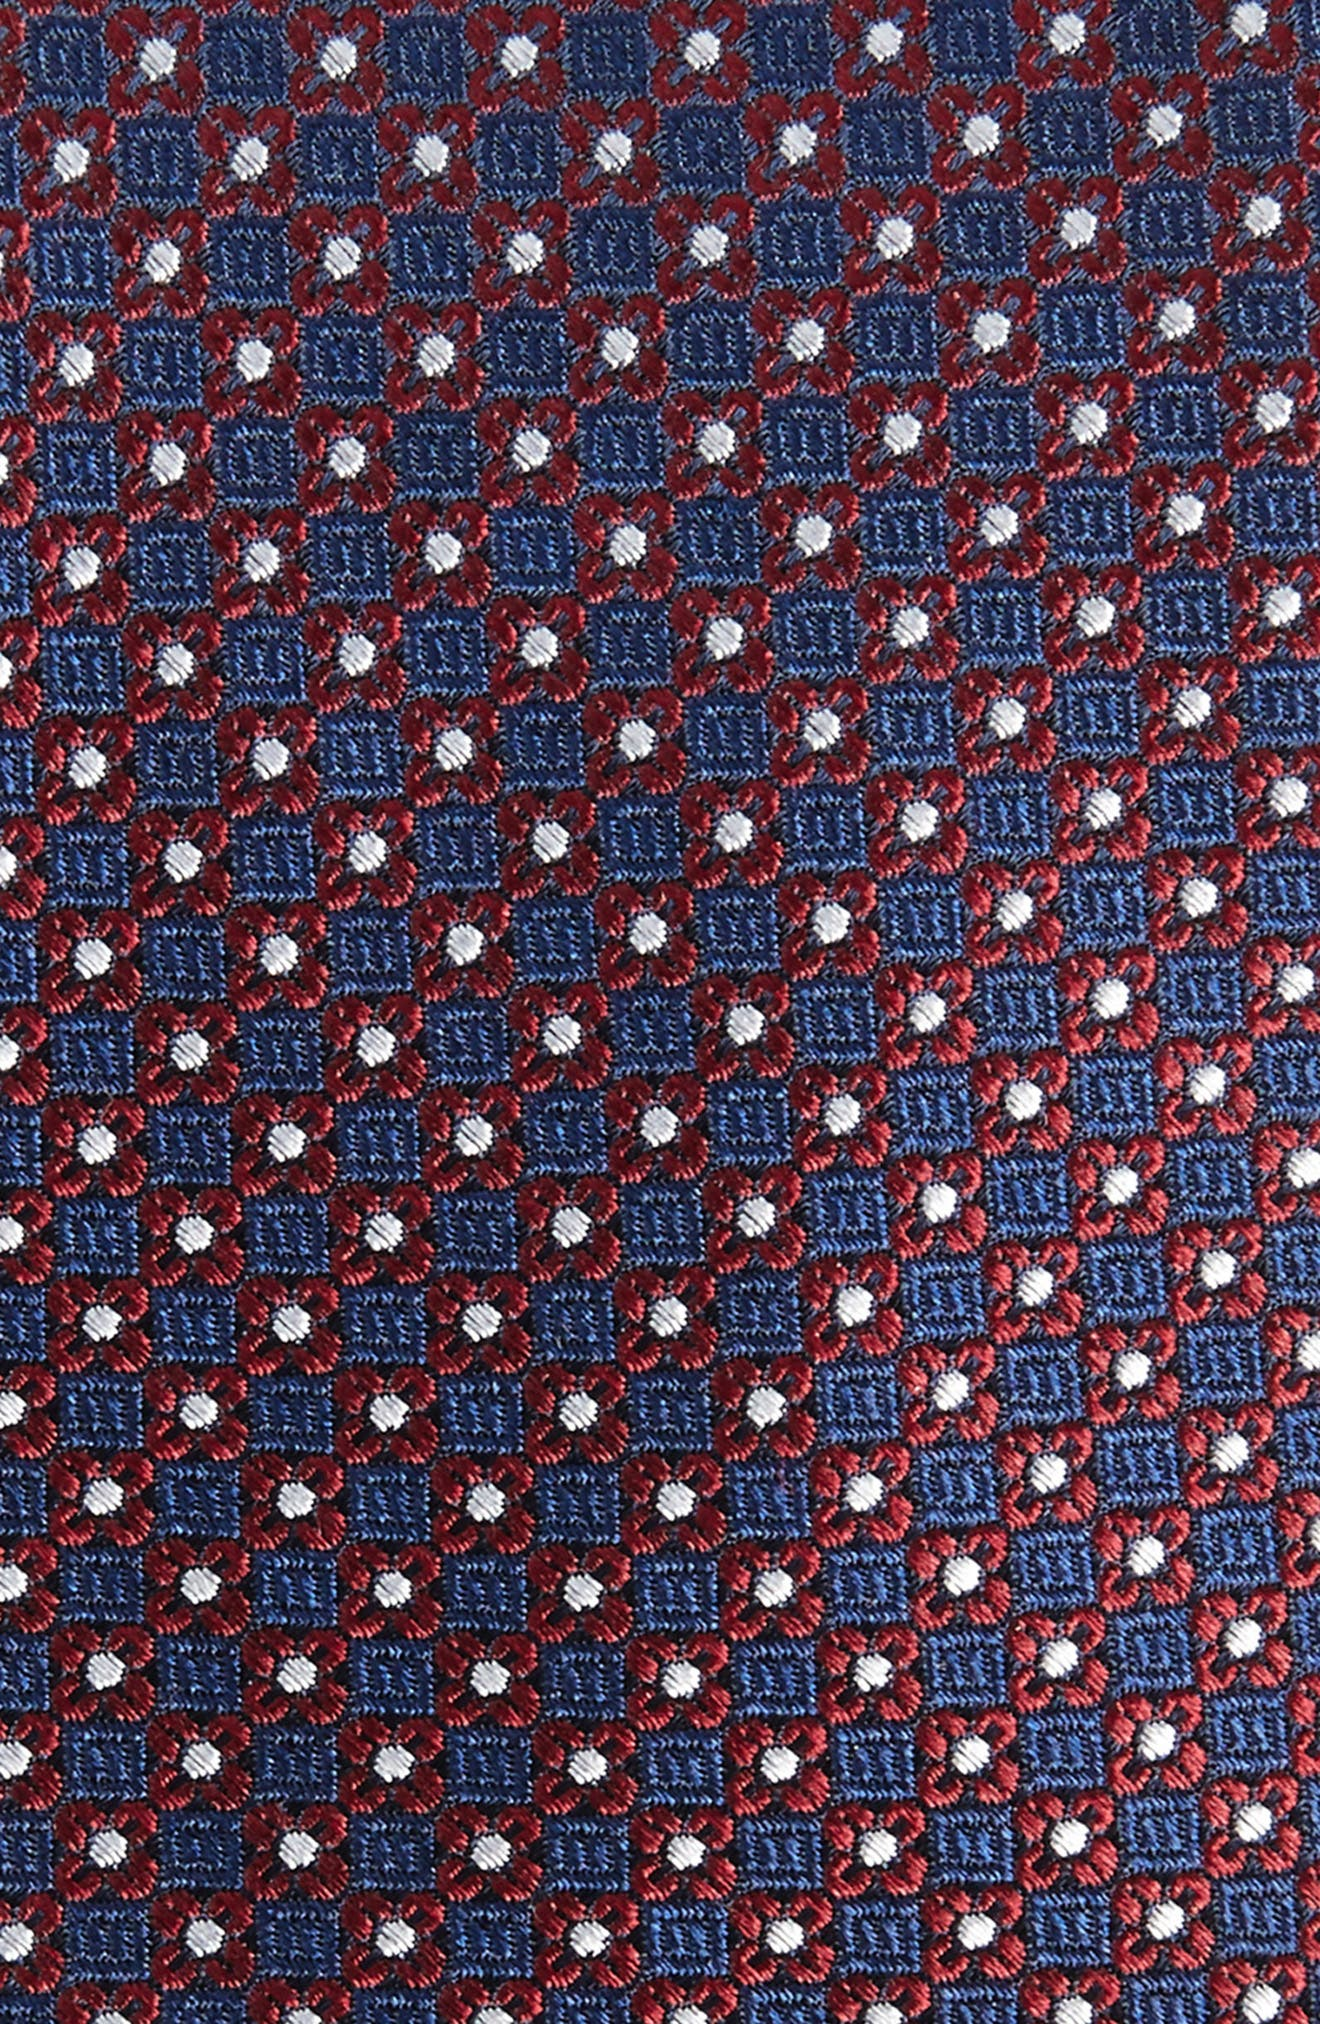 Floral Network Silk Skinny Tie,                             Alternate thumbnail 2, color,                             600